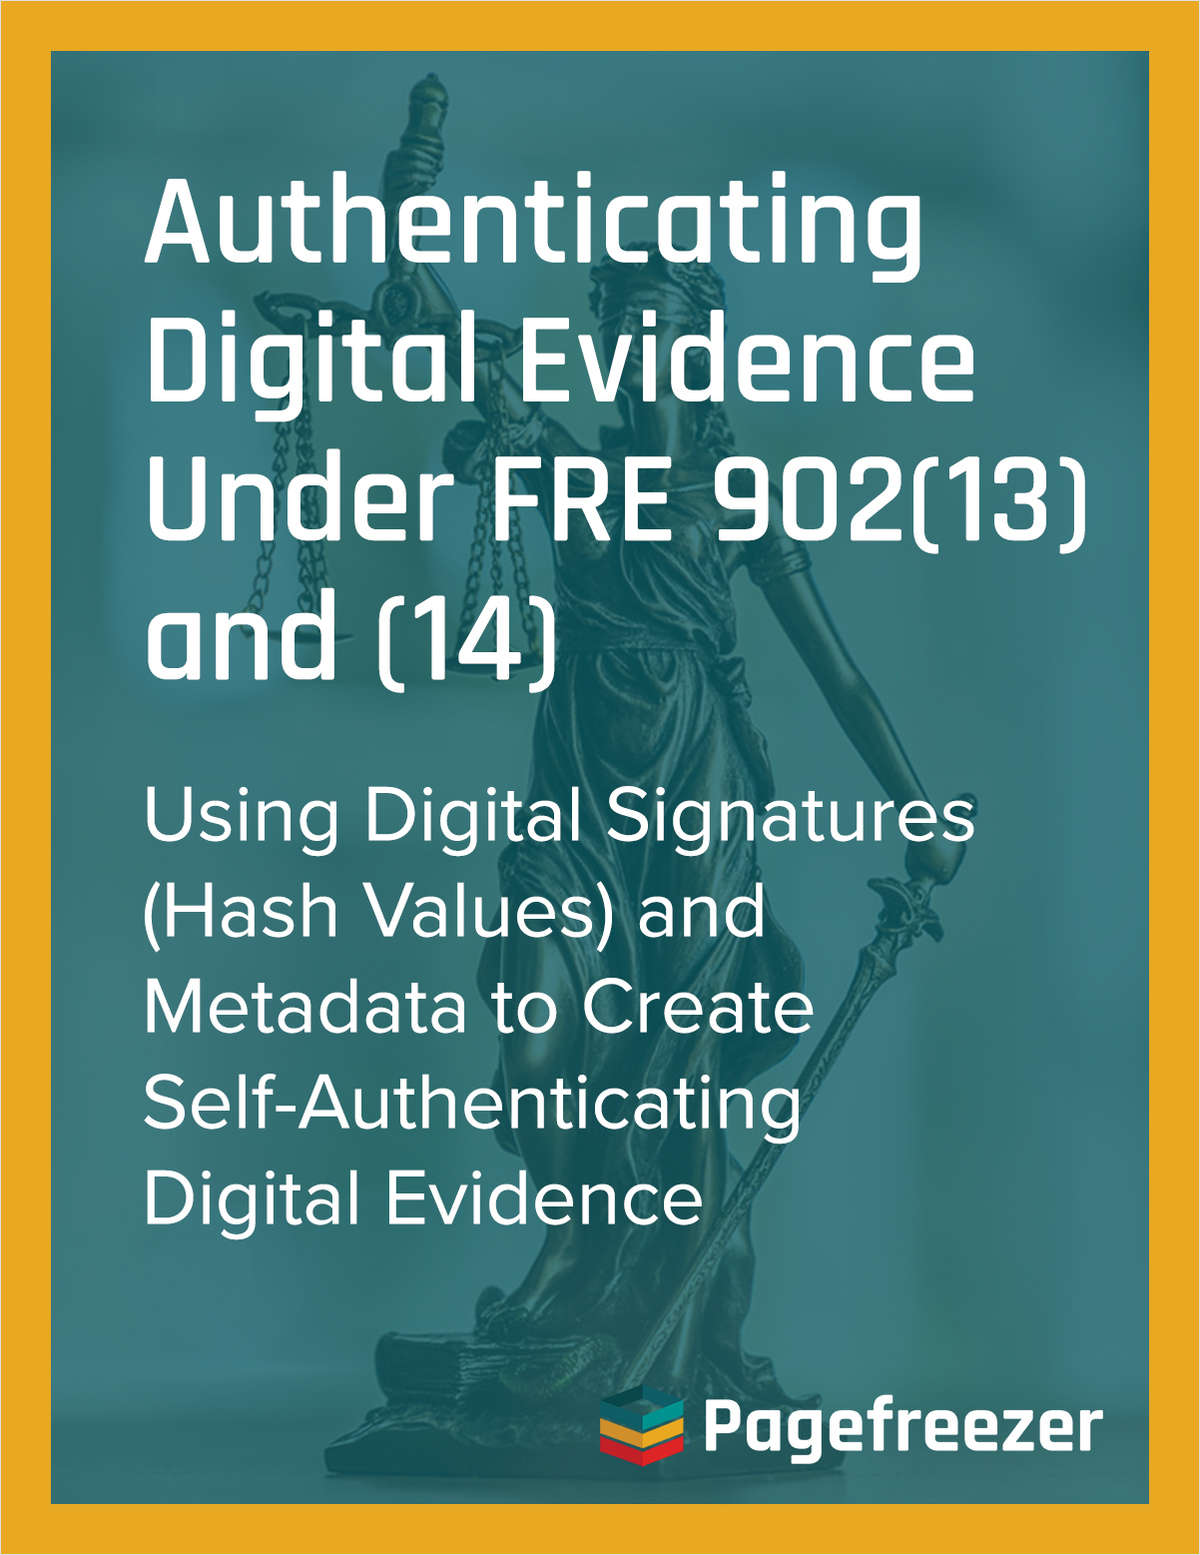 Authenticating Digital Evidence Under FRE 902(13) and (14)